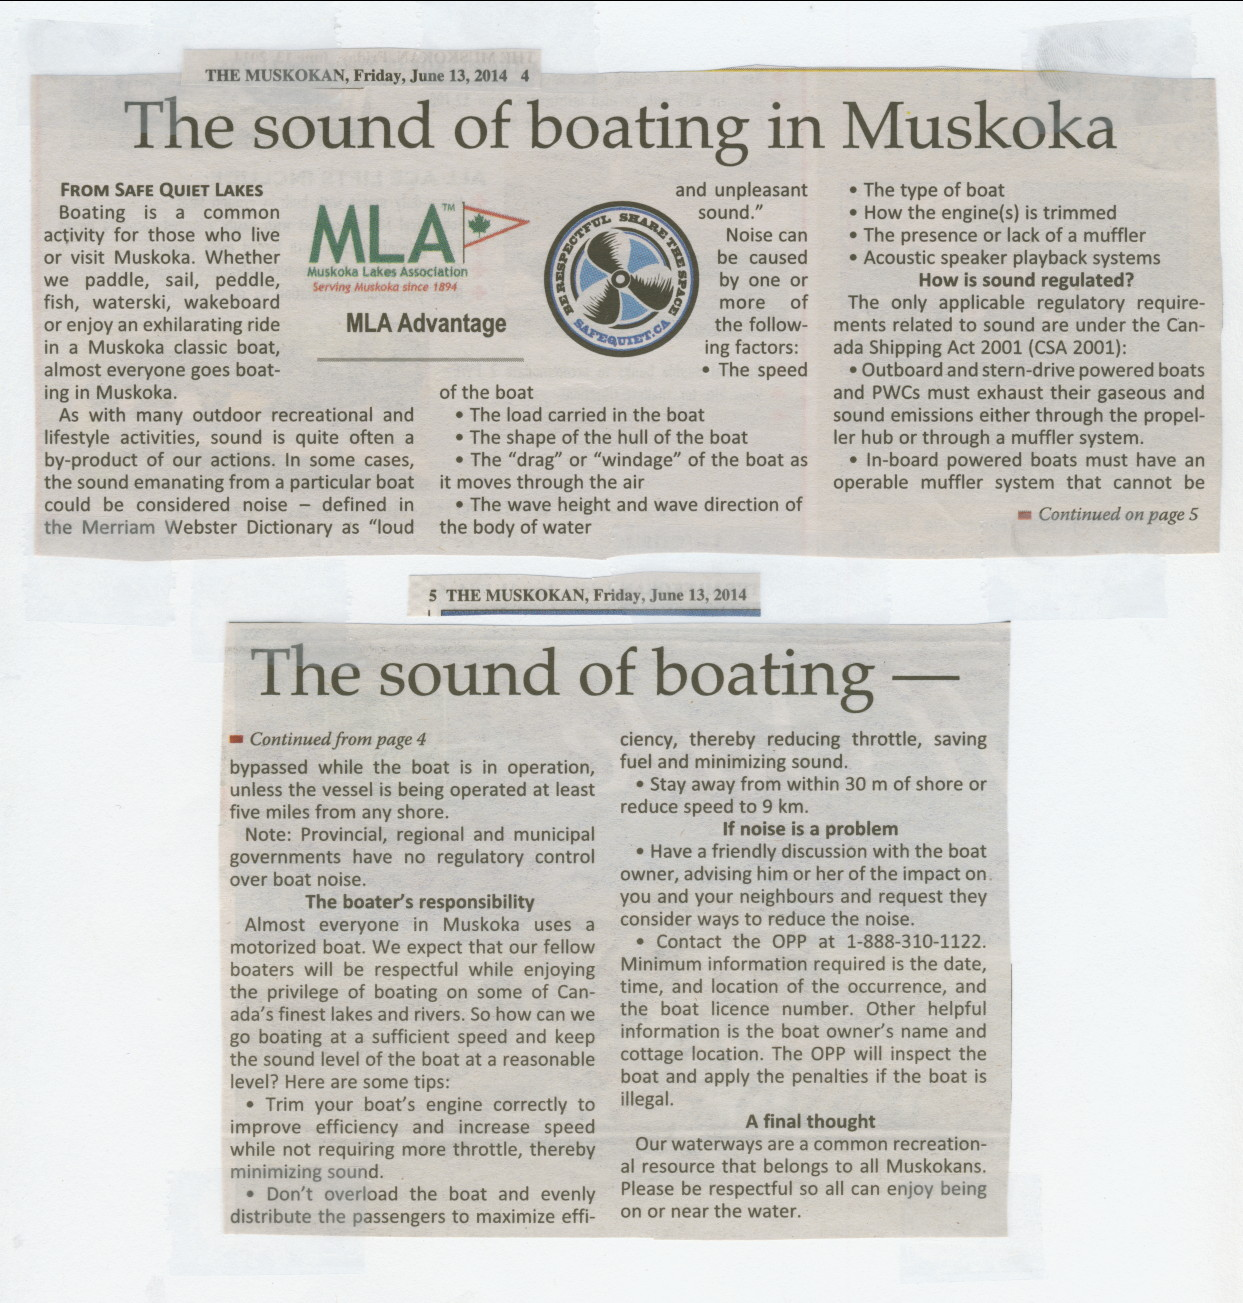 2014 - June 13 - The sound of boating in Muskoka - The Muskokan page 4 & 5